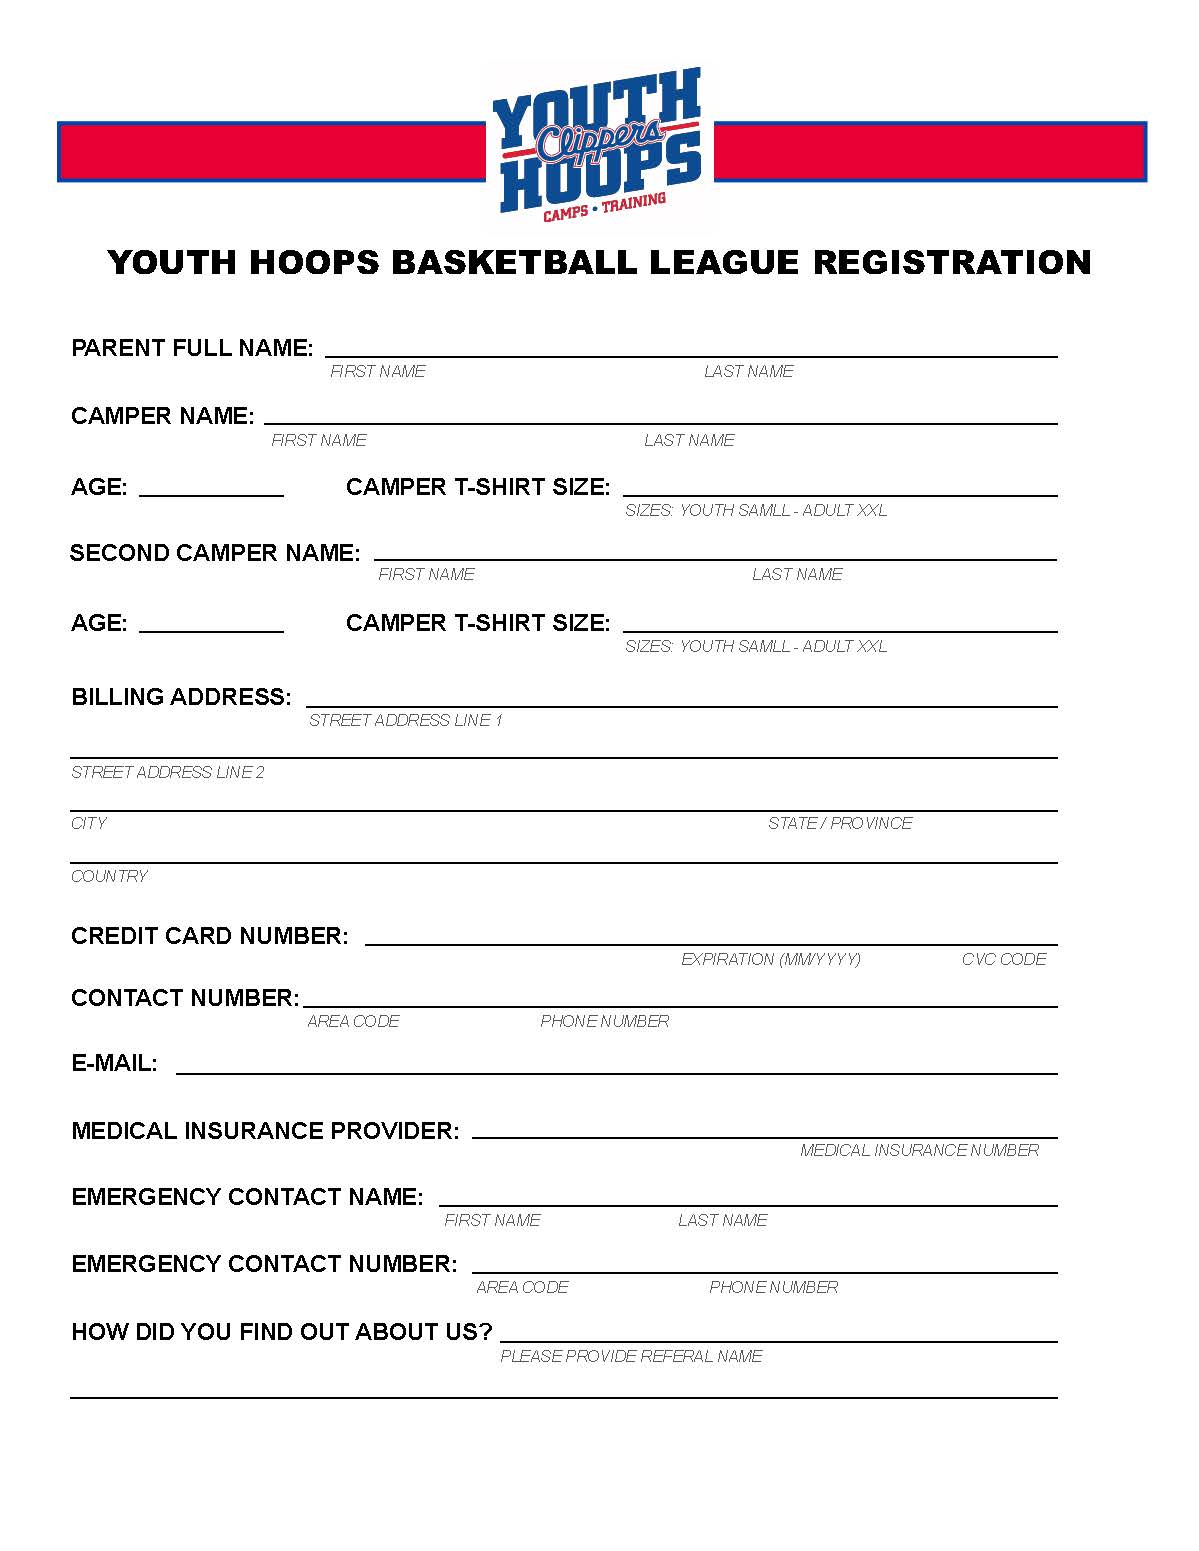 Clippers Youth Hoops Basketball League - PDF | LA Clippers